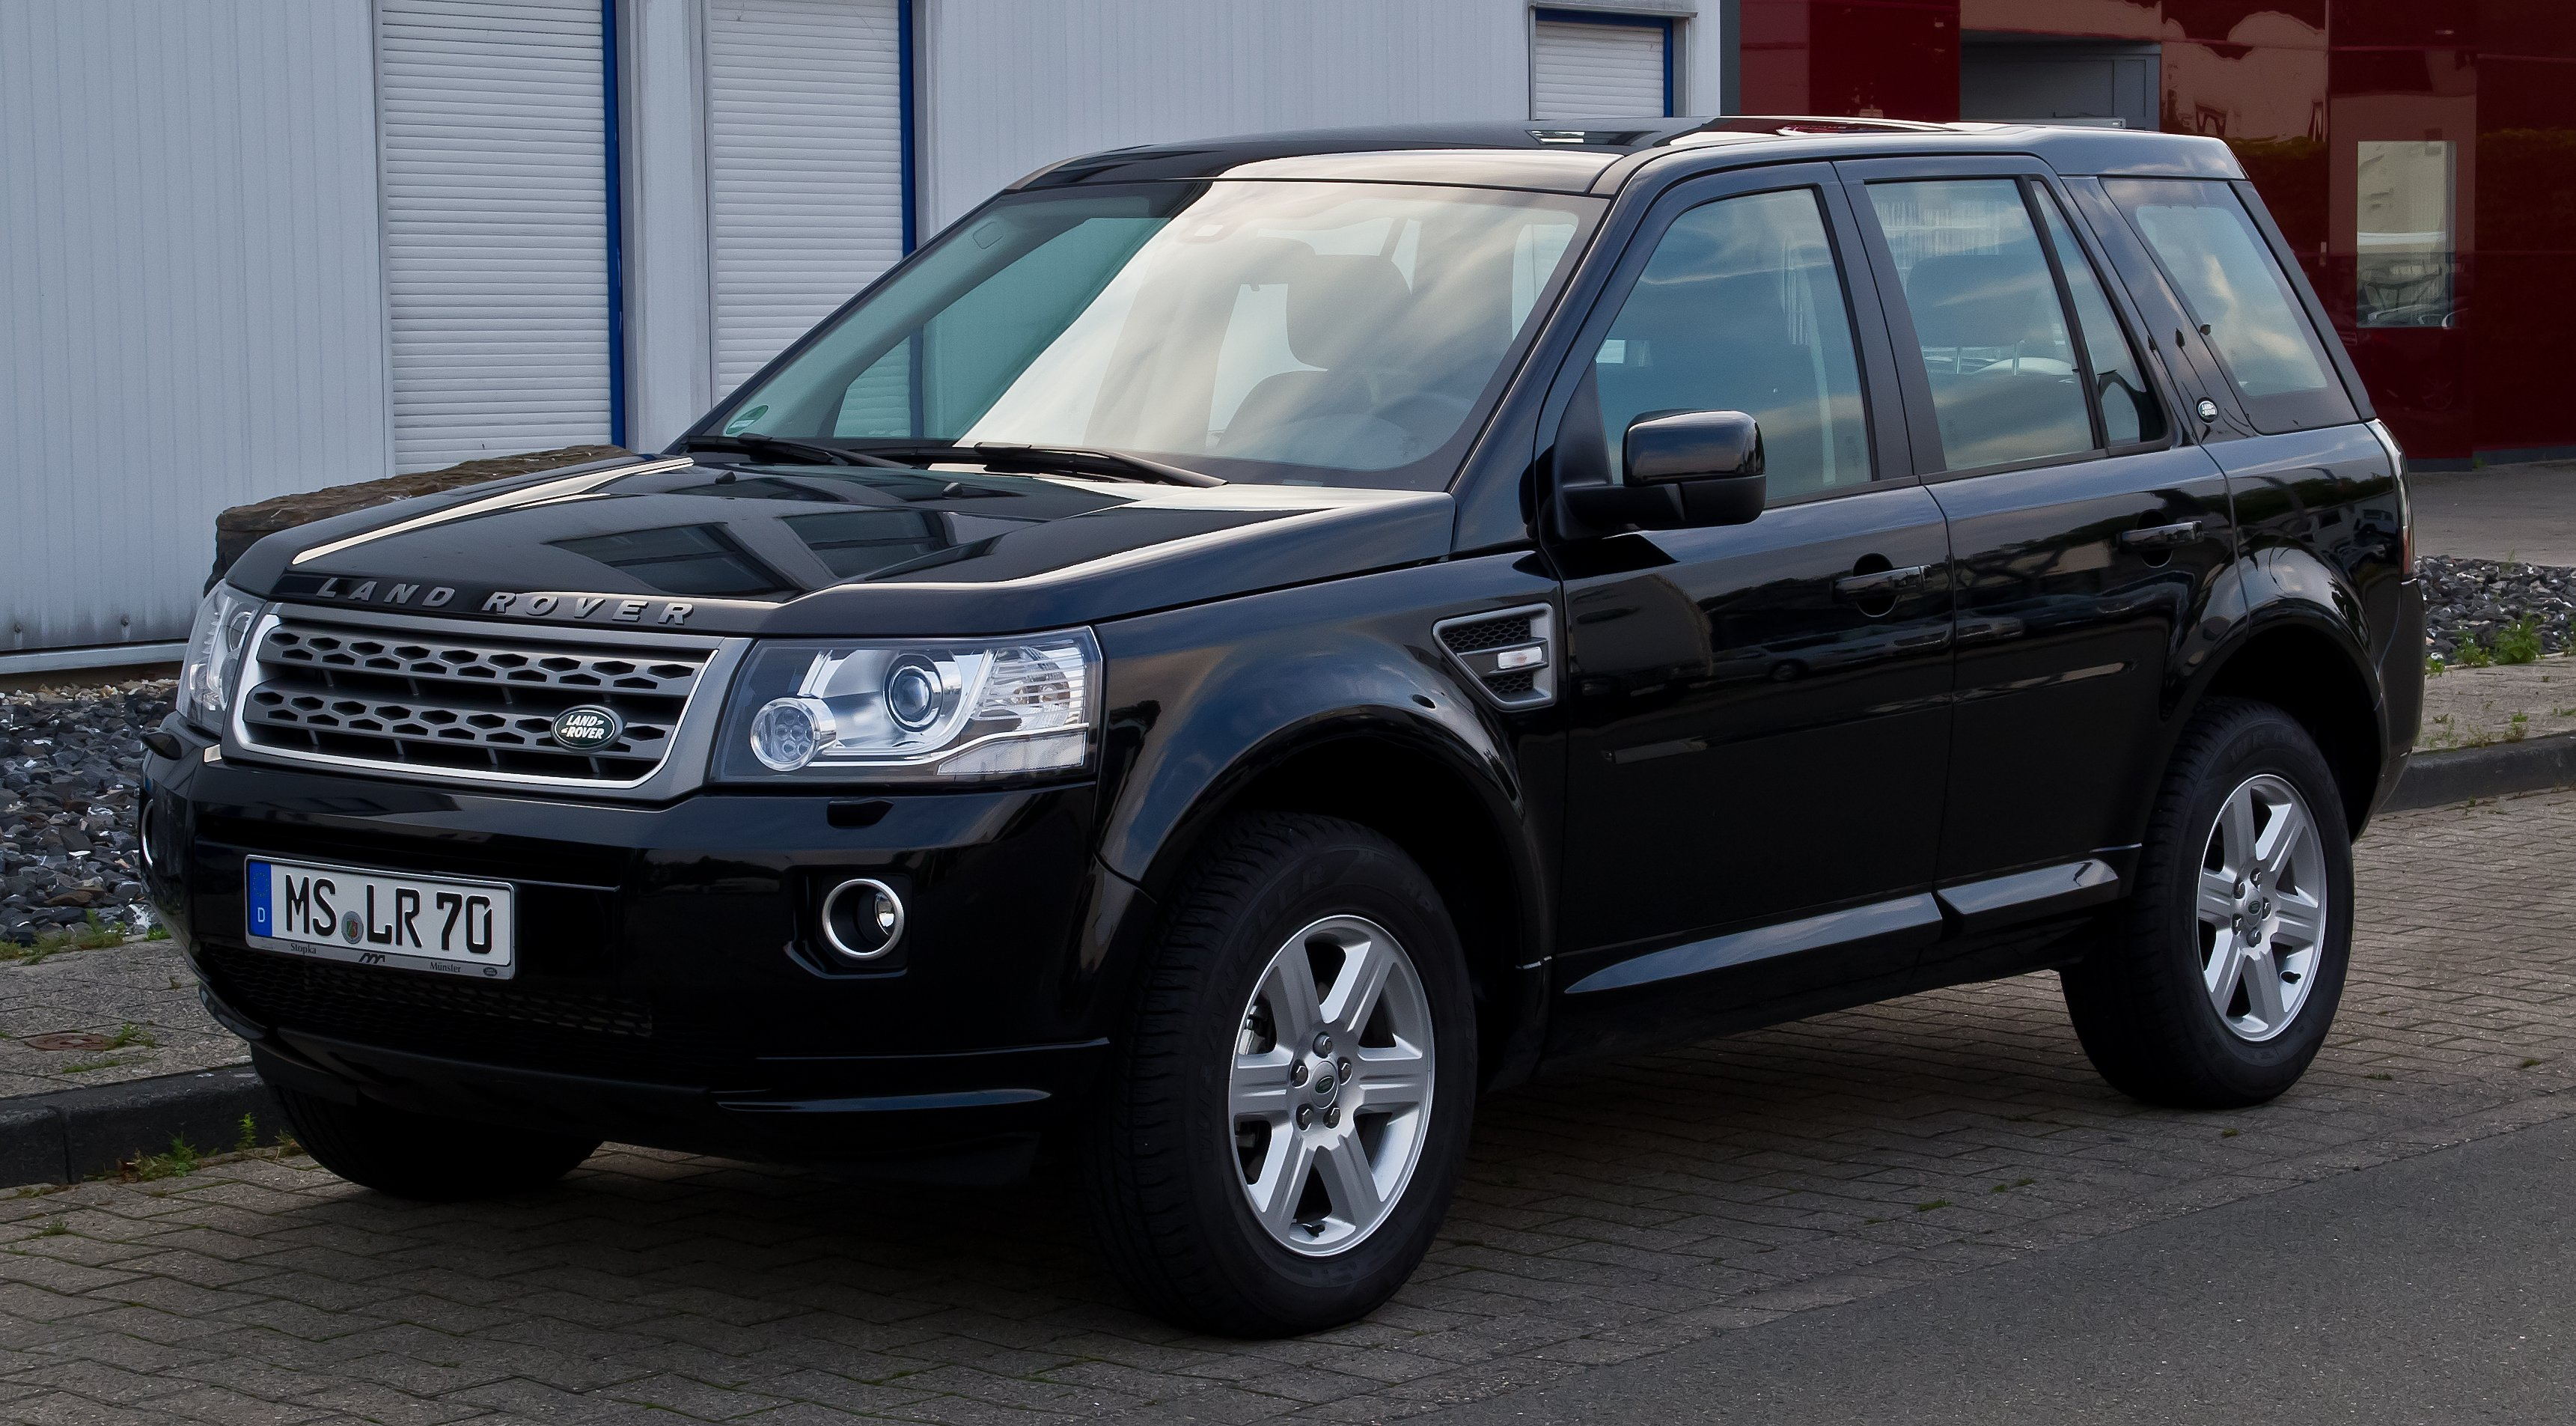 2015 land rover freelander ii pictures information and specs auto. Black Bedroom Furniture Sets. Home Design Ideas